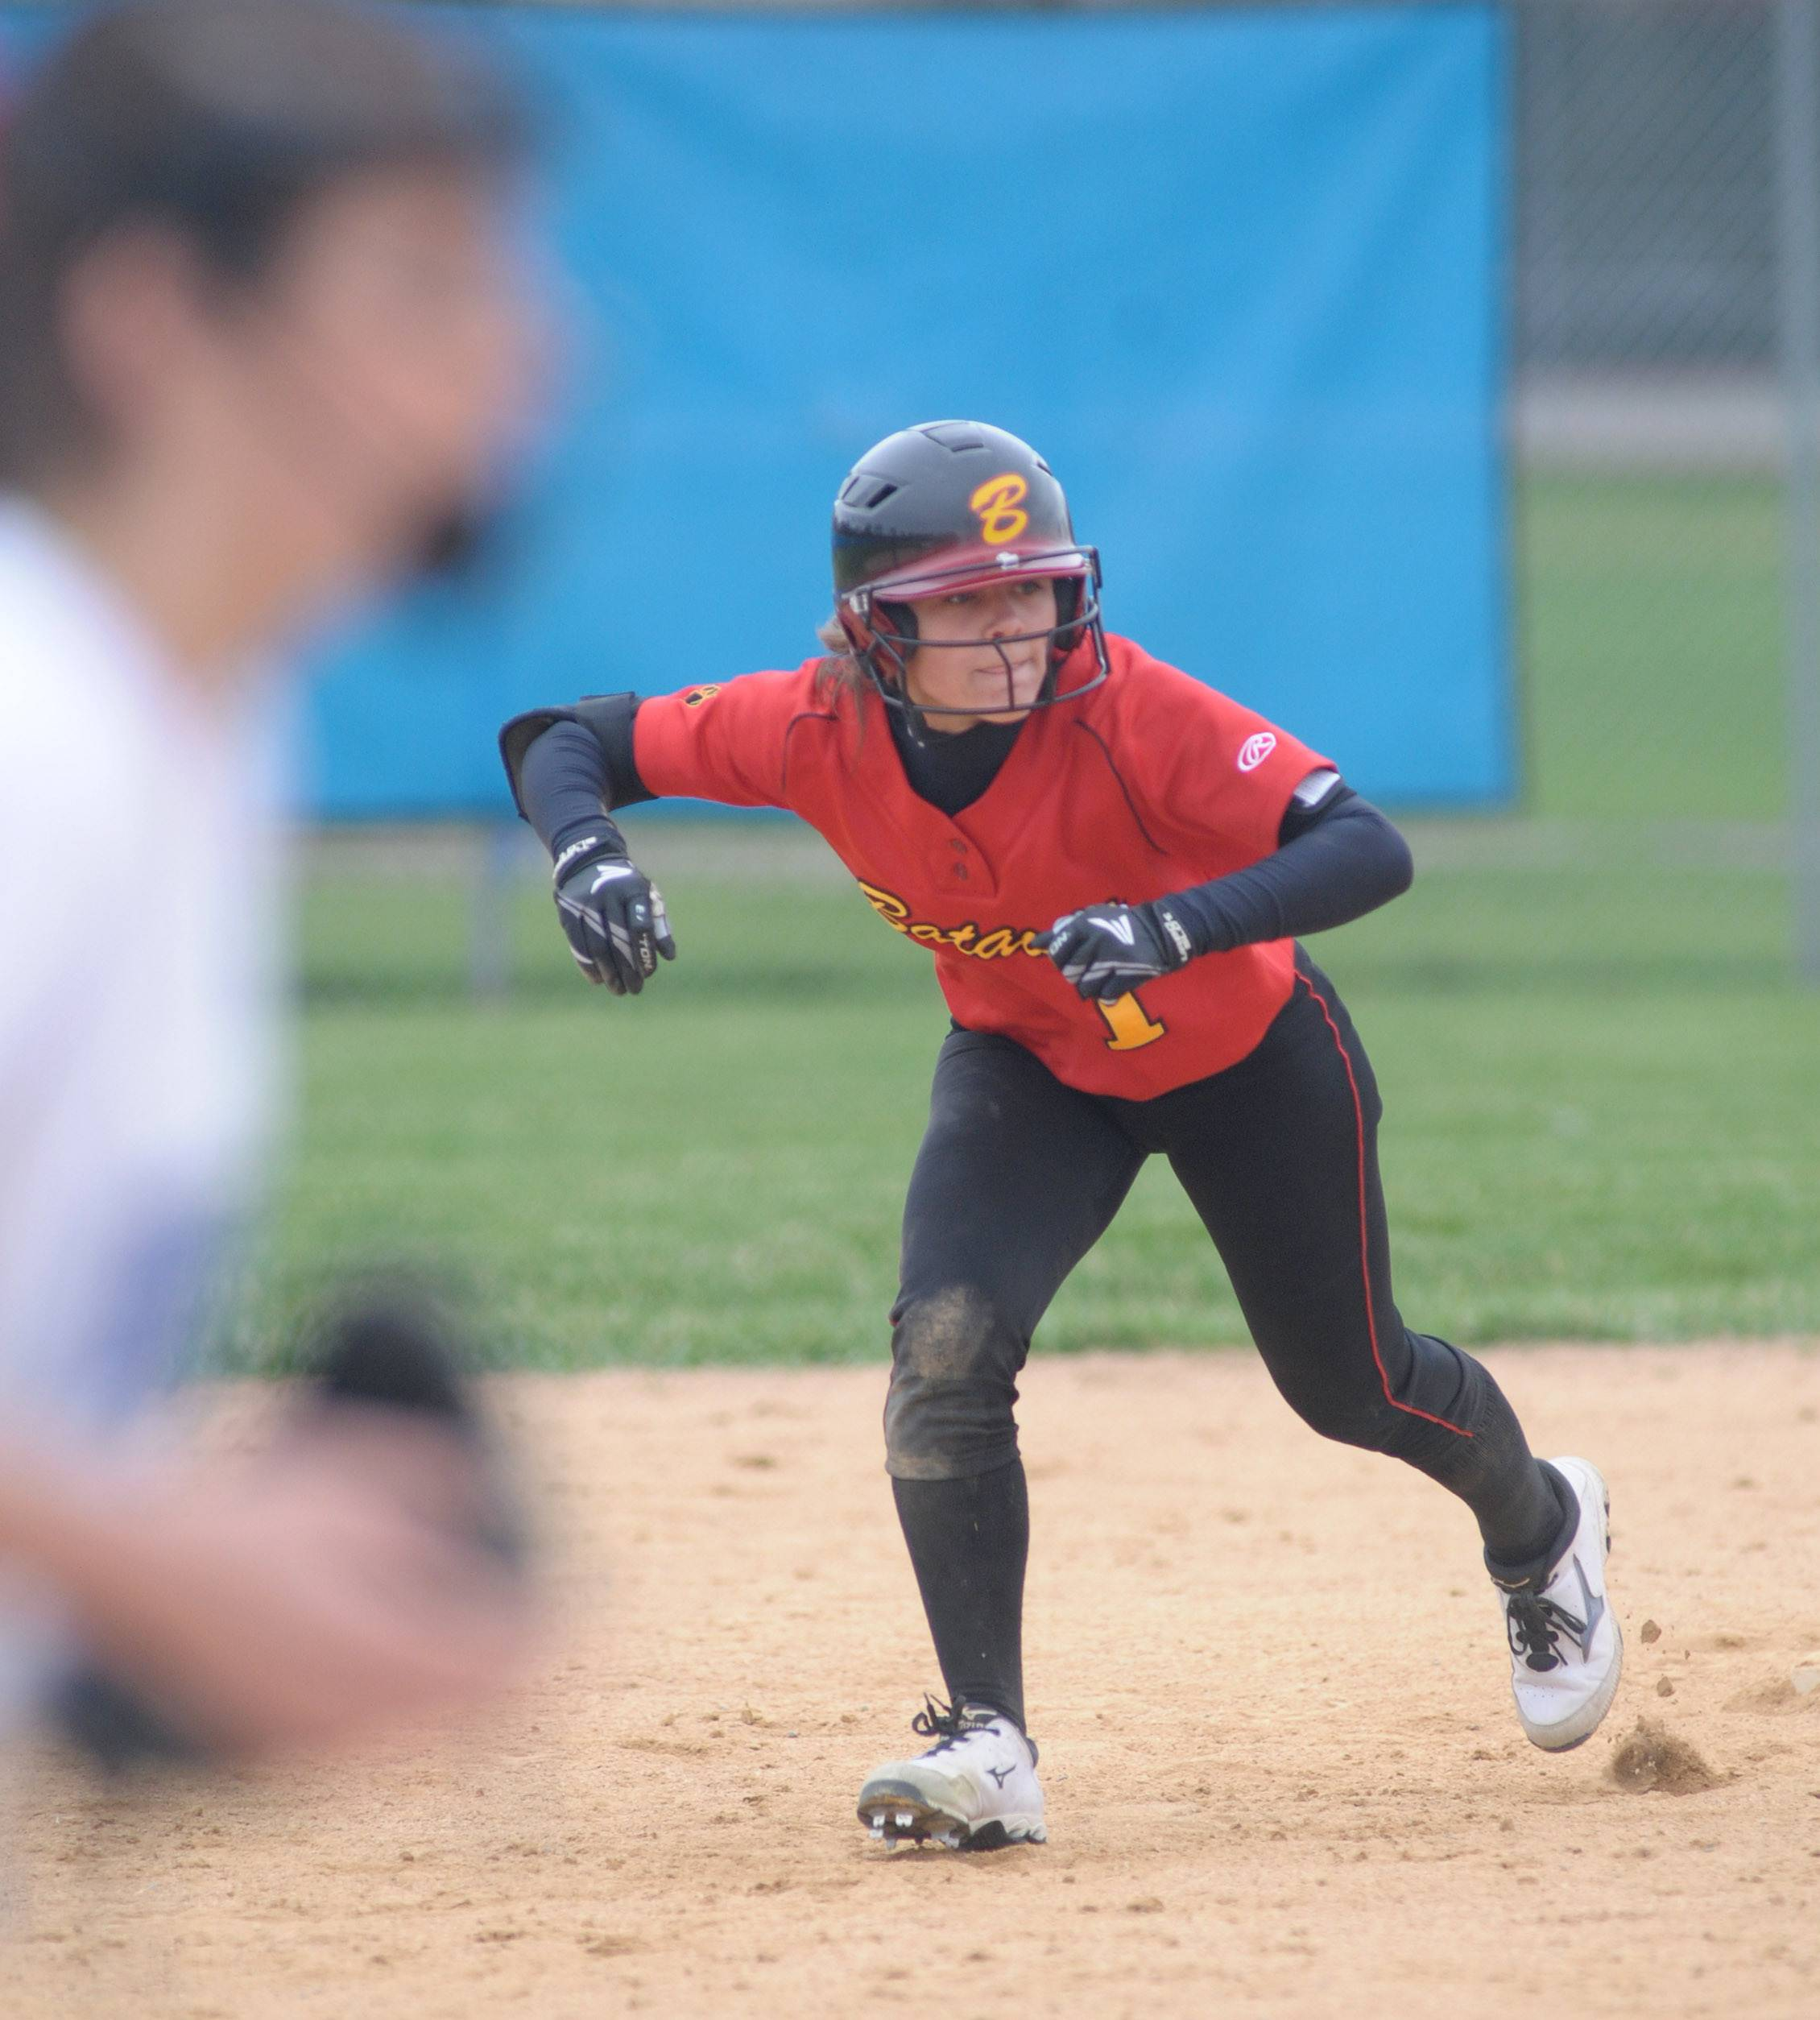 Batavia's Ryanne Marks leads off first plate in the third inning on Wednesday, April 23.